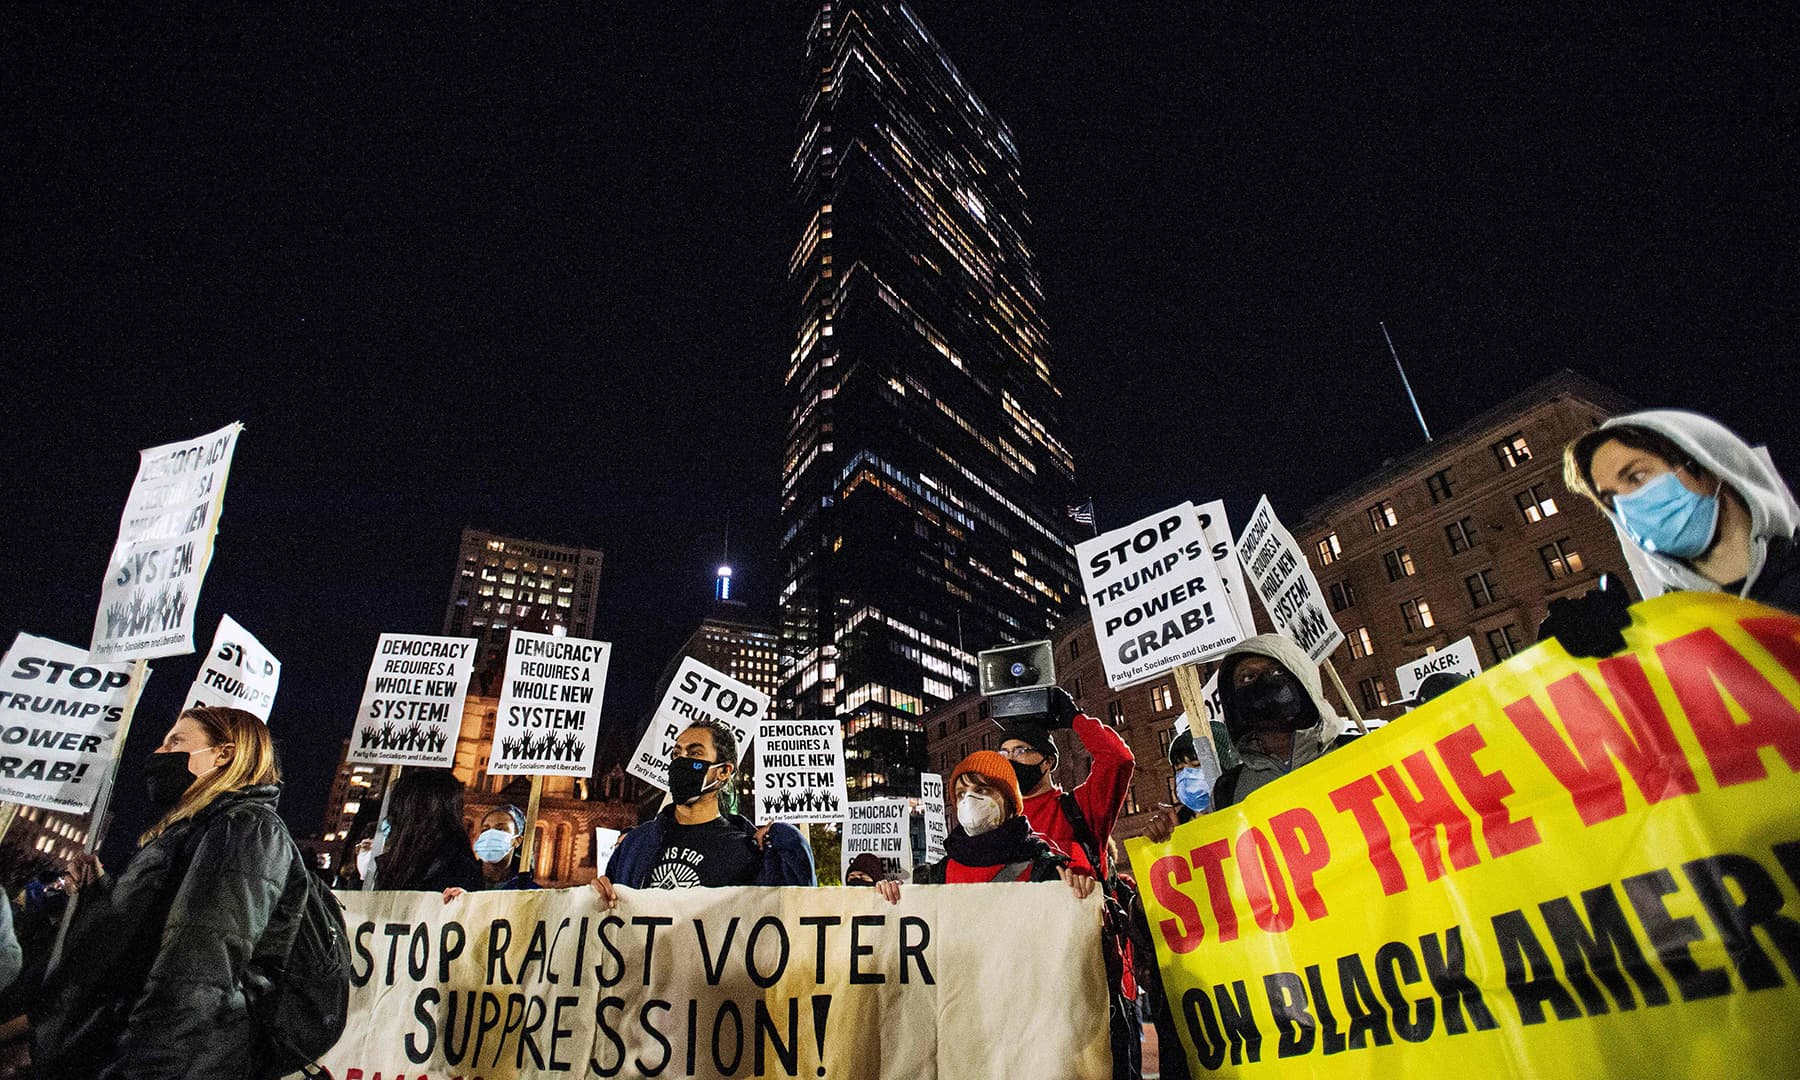 People gather at Copley Square at the Boston Public Library calling for a new political party and system, not happy with either political candidate, in Boston on November 4. — AFP